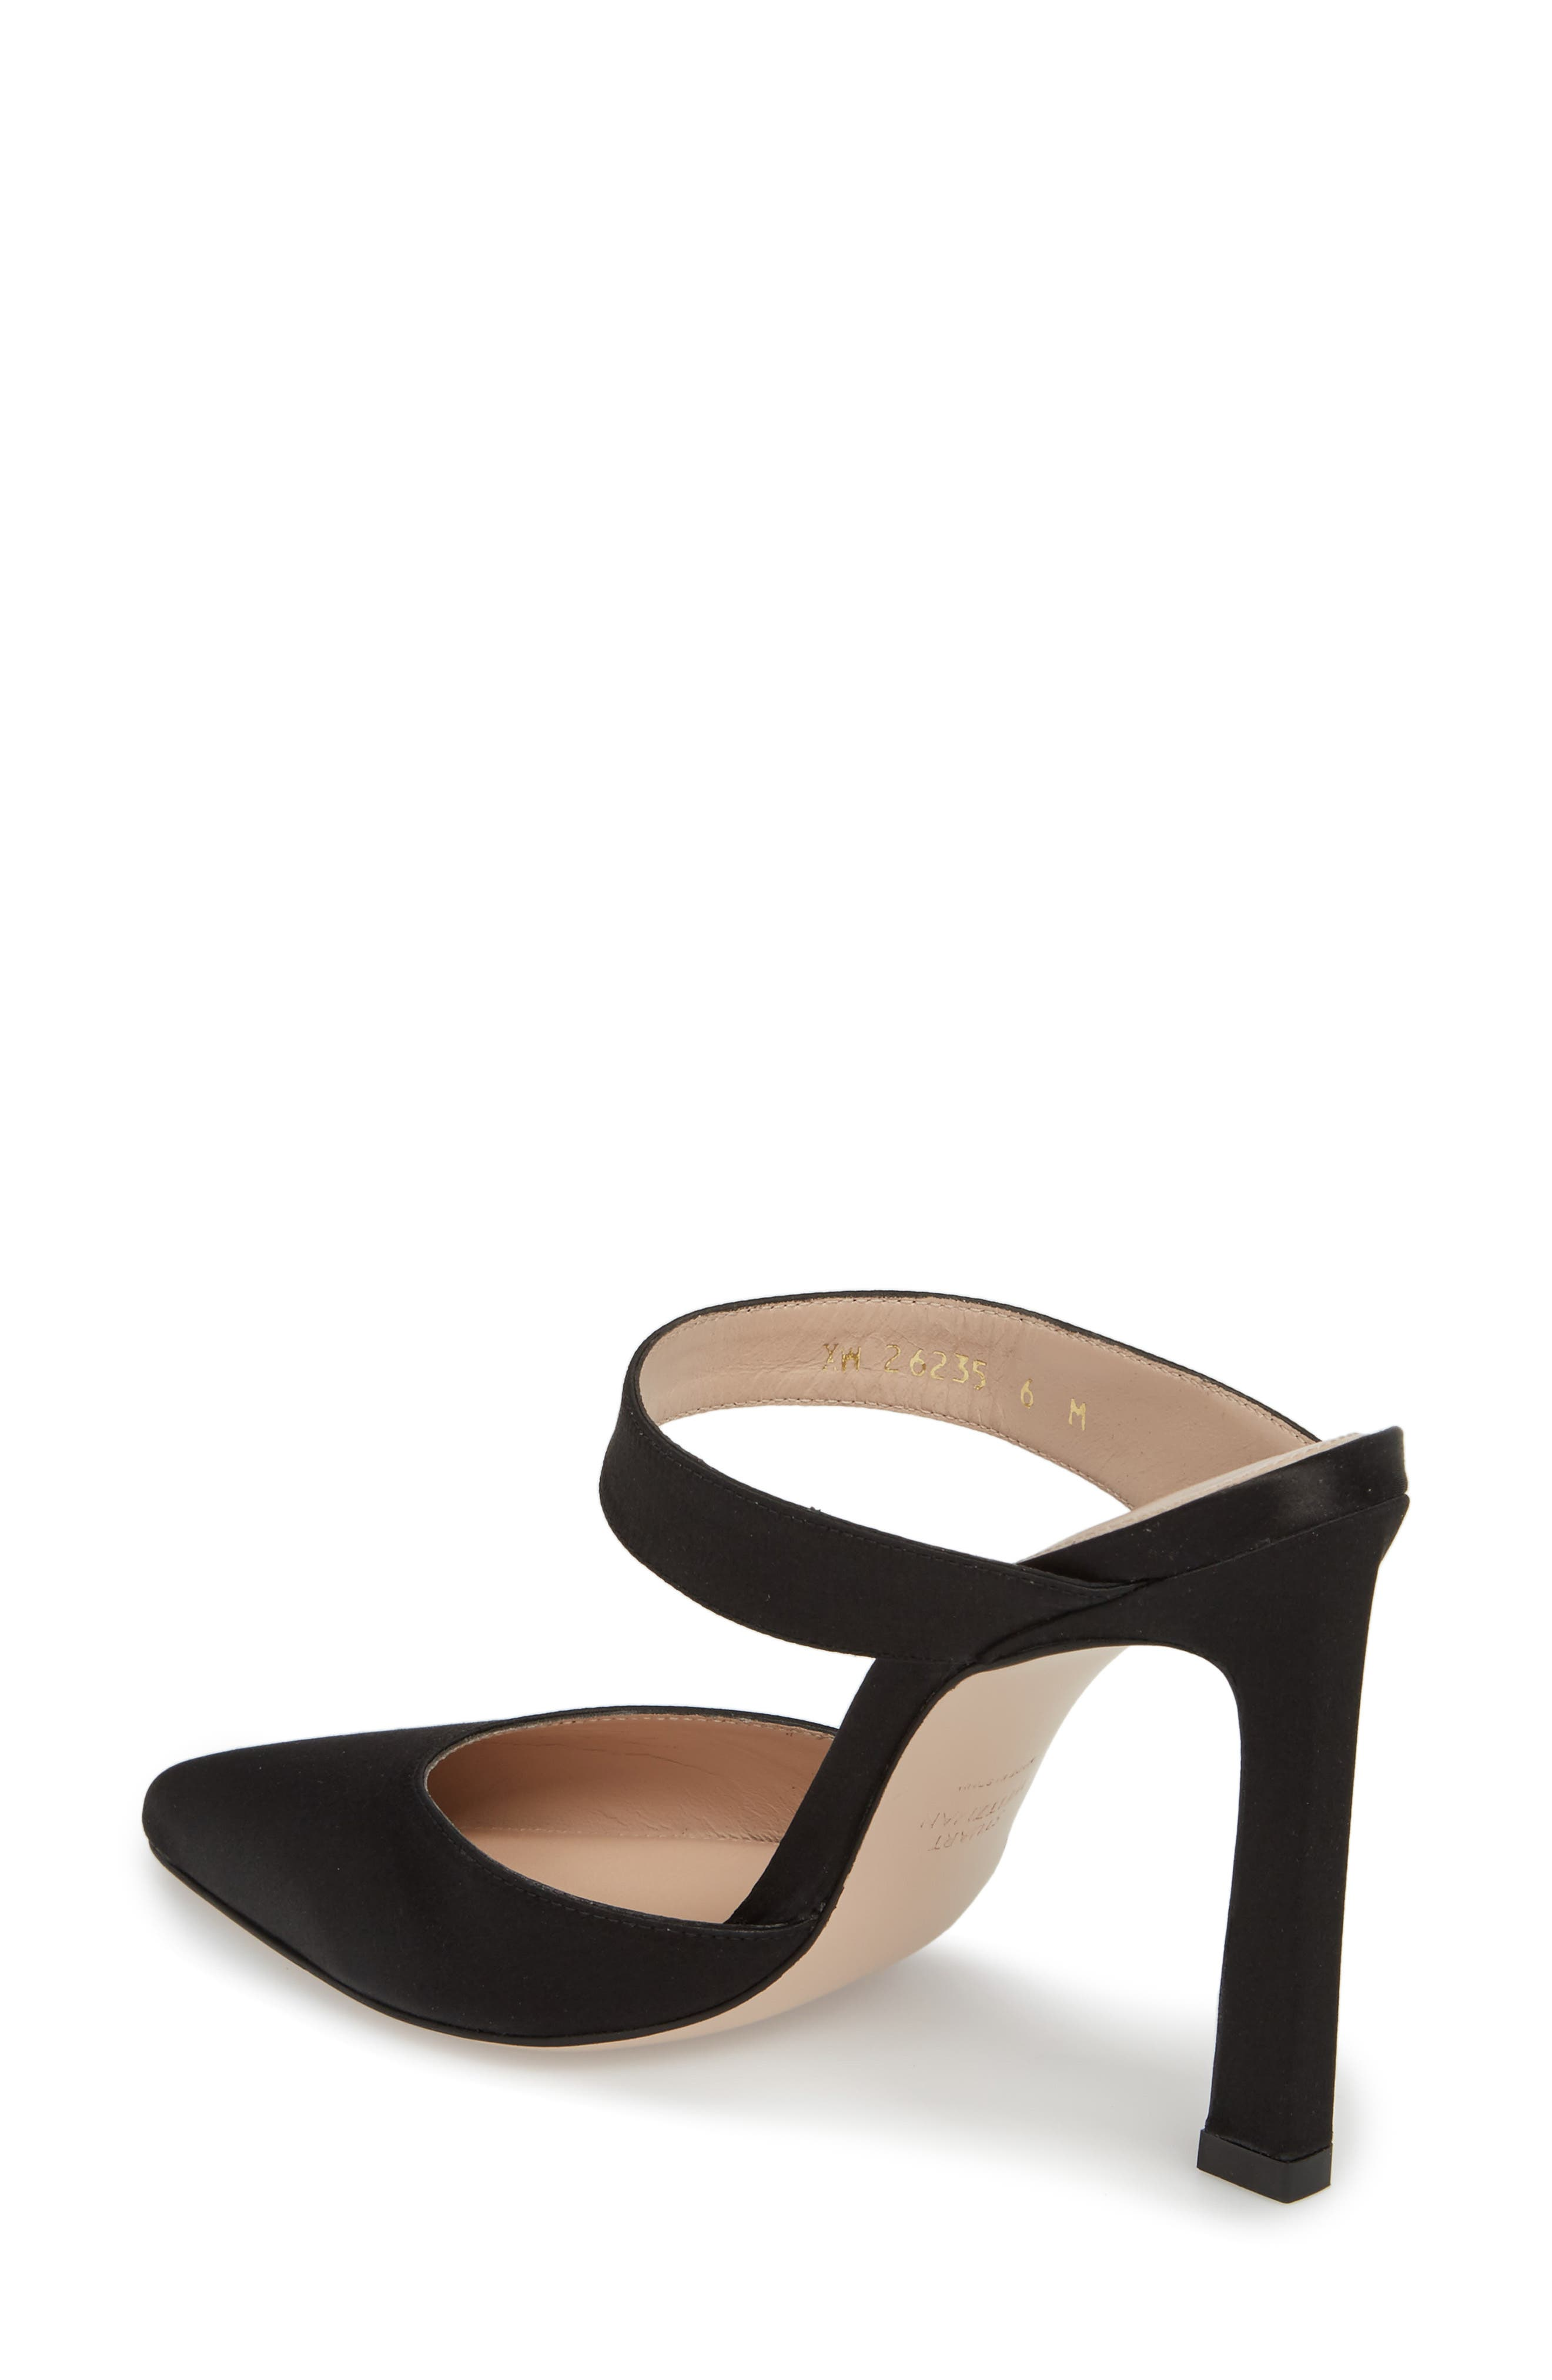 Event Pointy Toe Pump,                             Alternate thumbnail 2, color,                             002